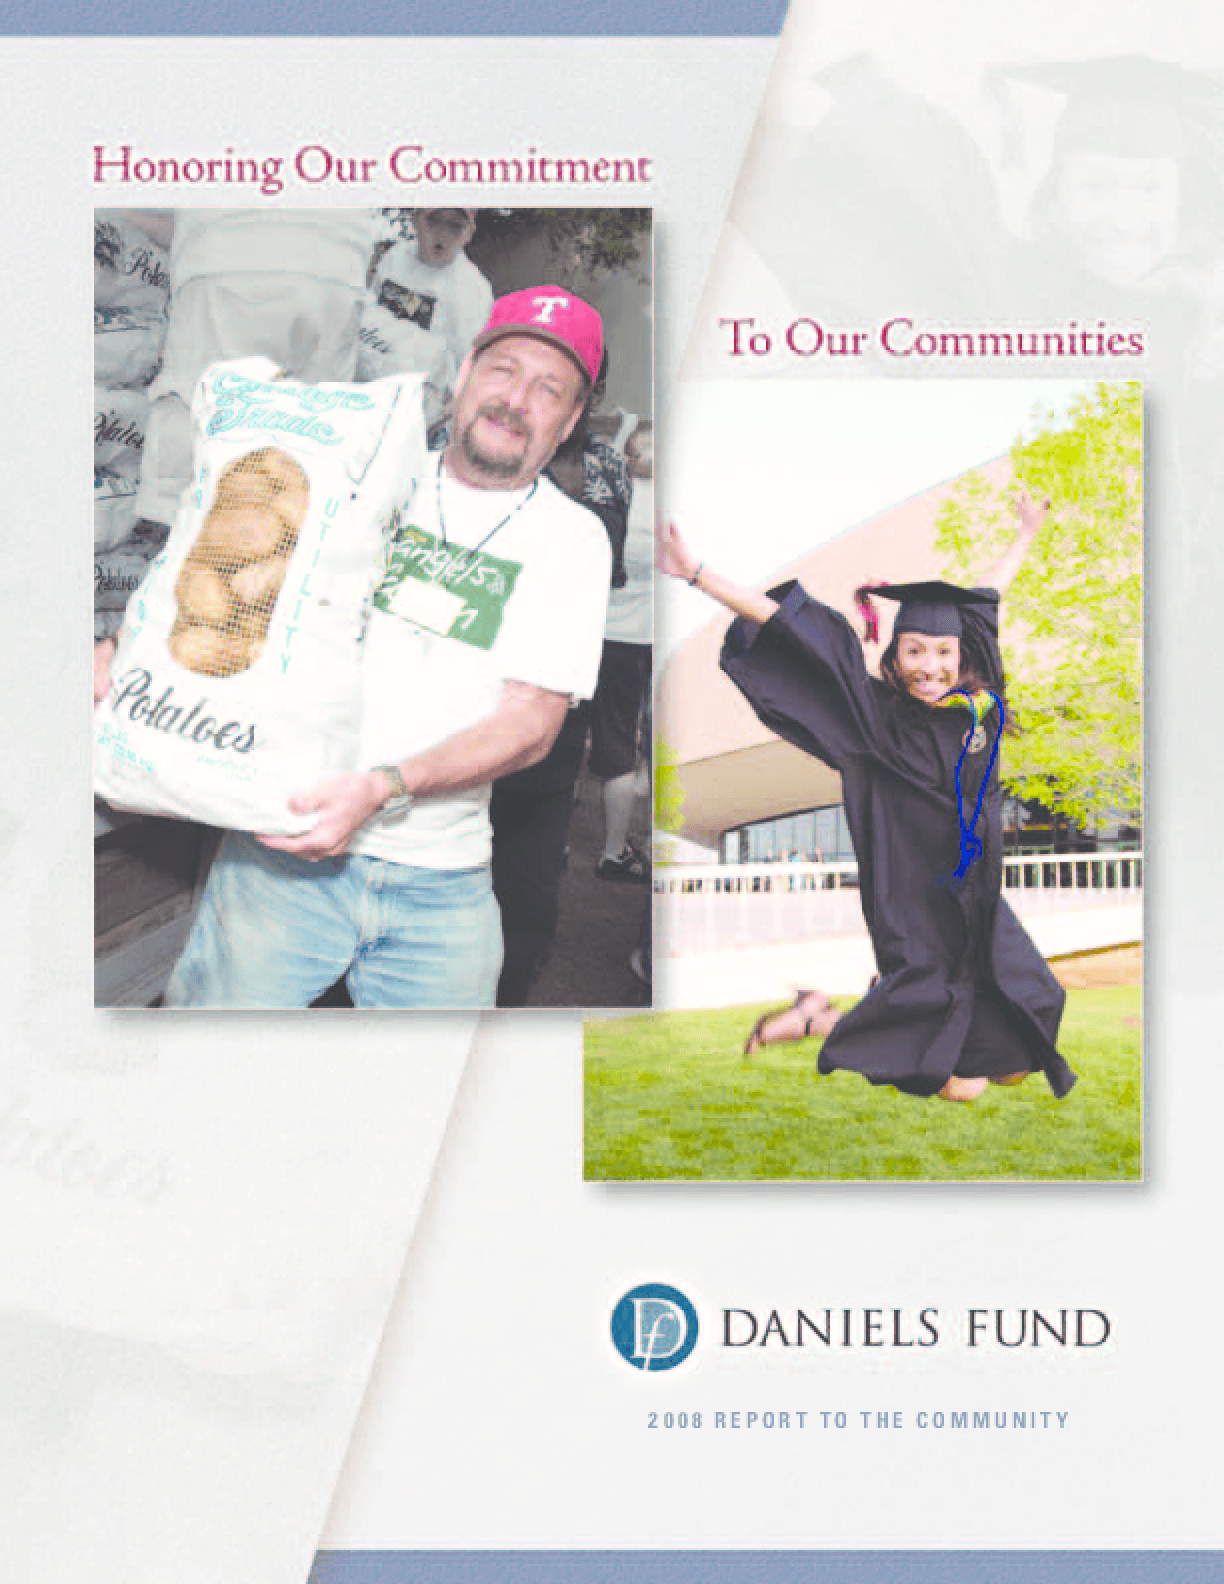 Daniels Fund - 2008 Annual Report